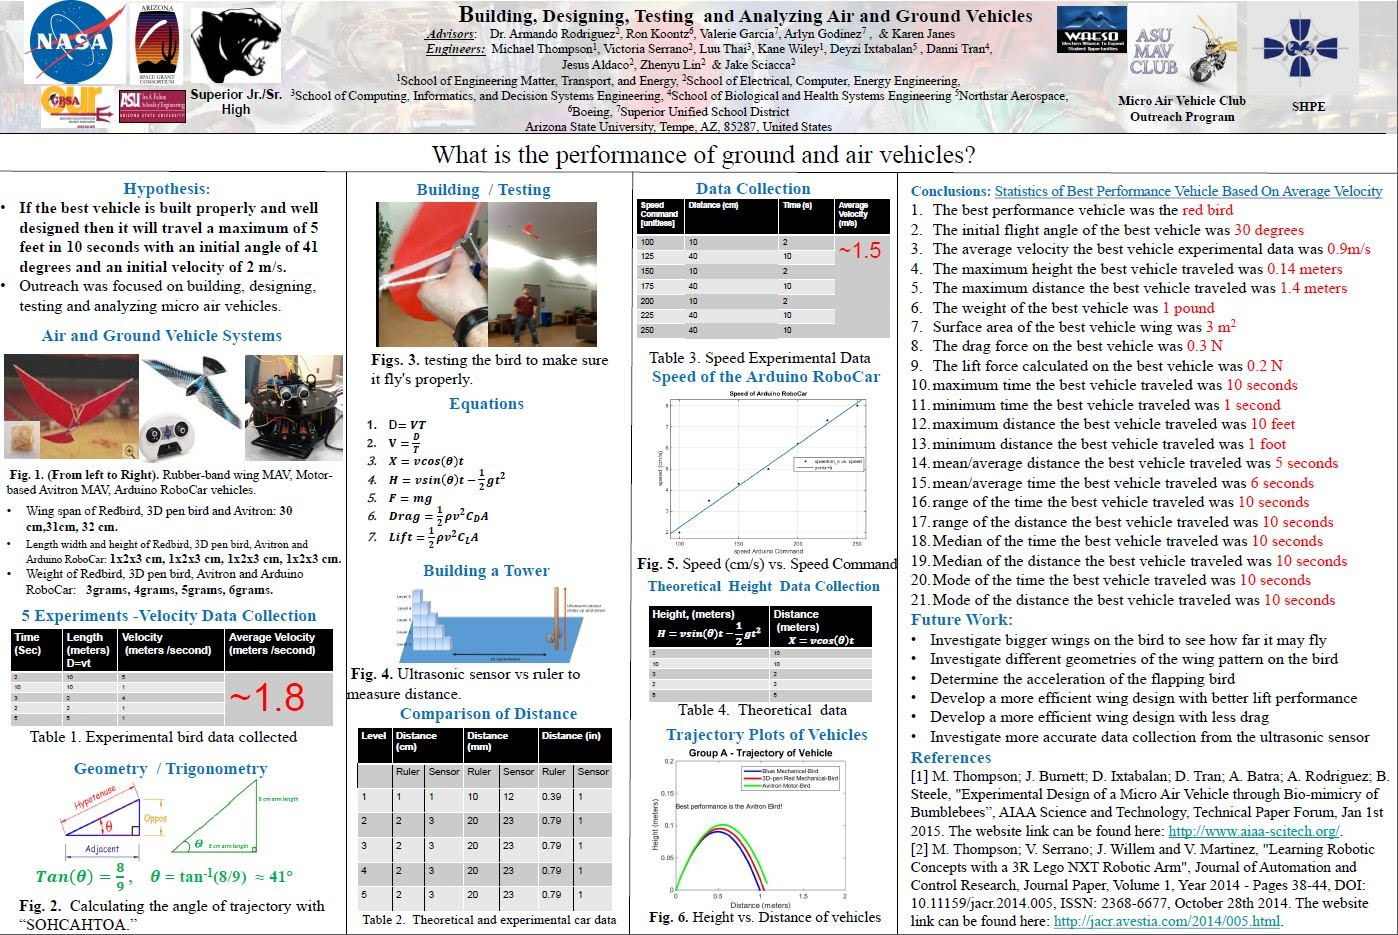 Demo Poster And Data Table Template For Science Fairs Michael Thompson